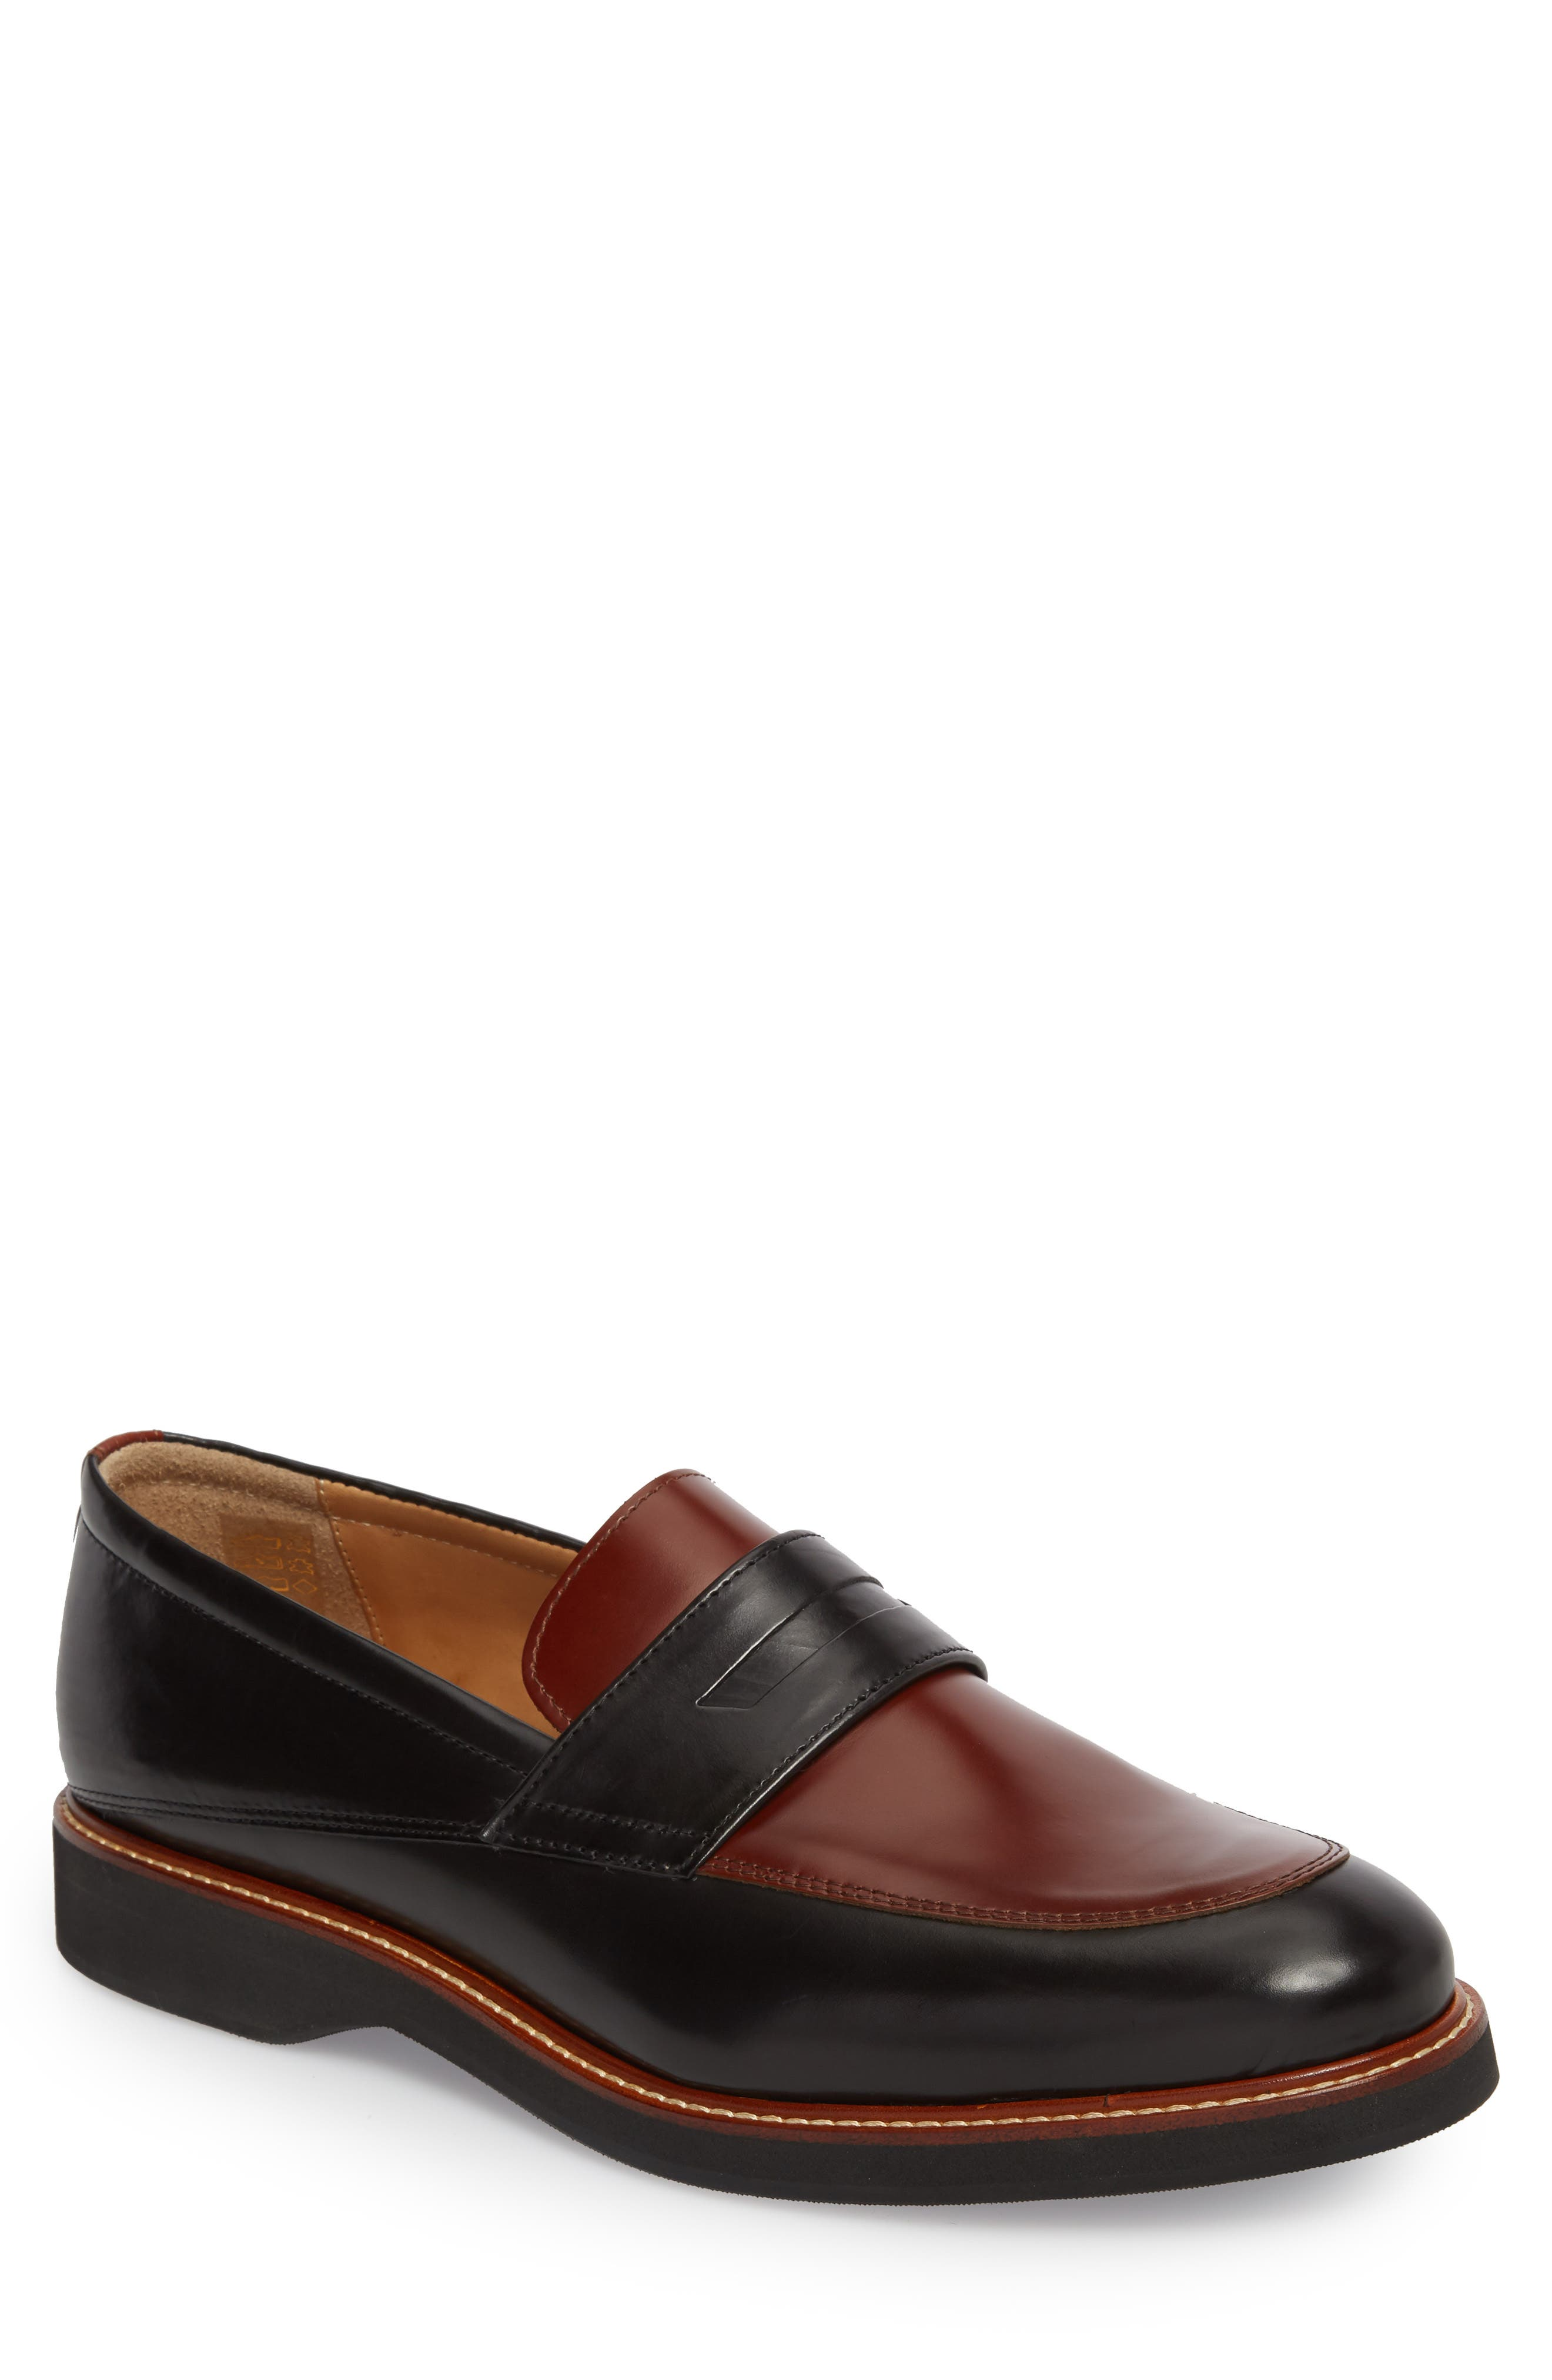 Marcus Penny Loafer,                             Main thumbnail 1, color,                             Black/ Cognac